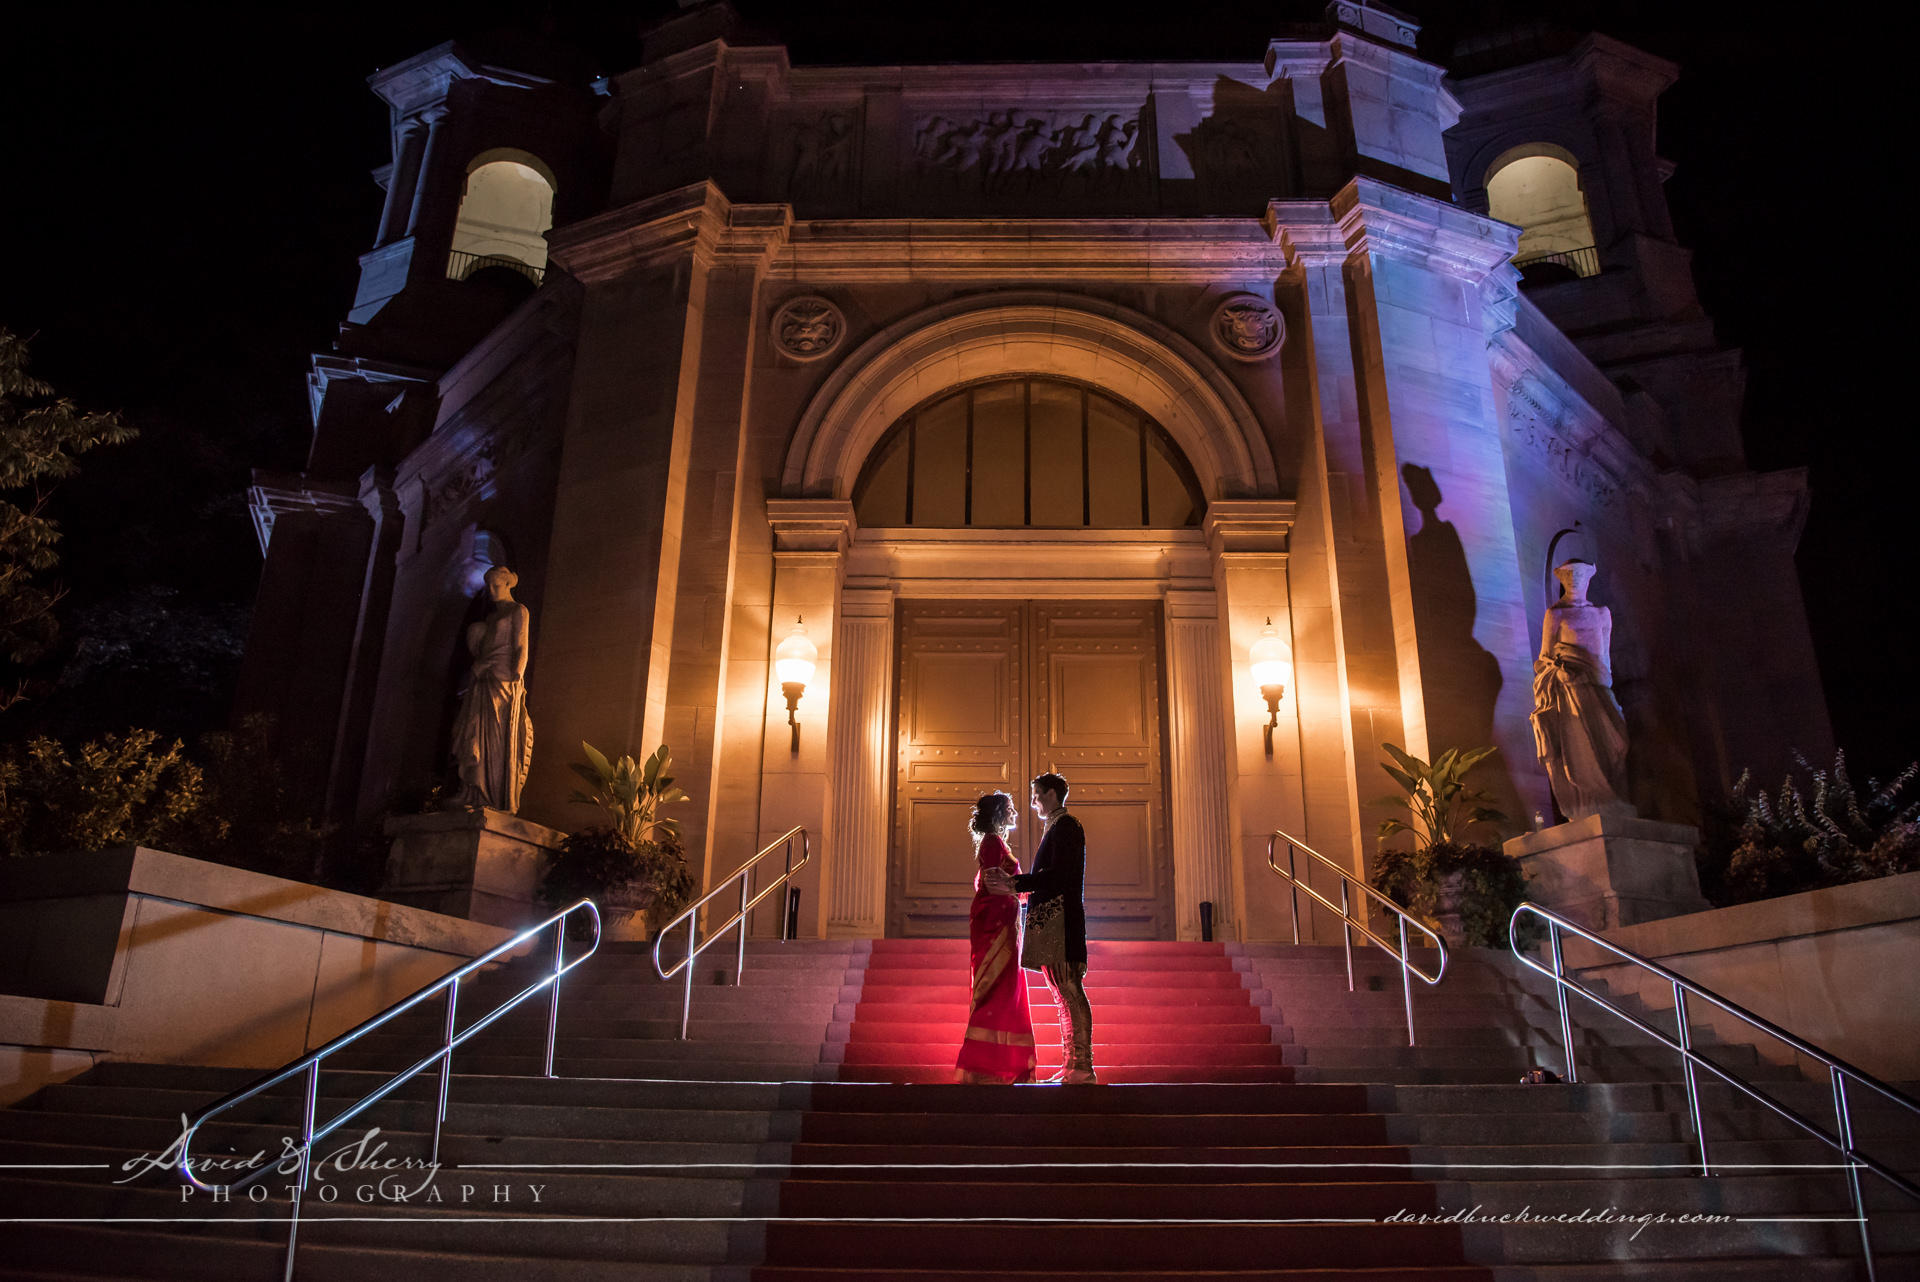 David & Sherry Photography - Liberty Grand Wedding Night Photo